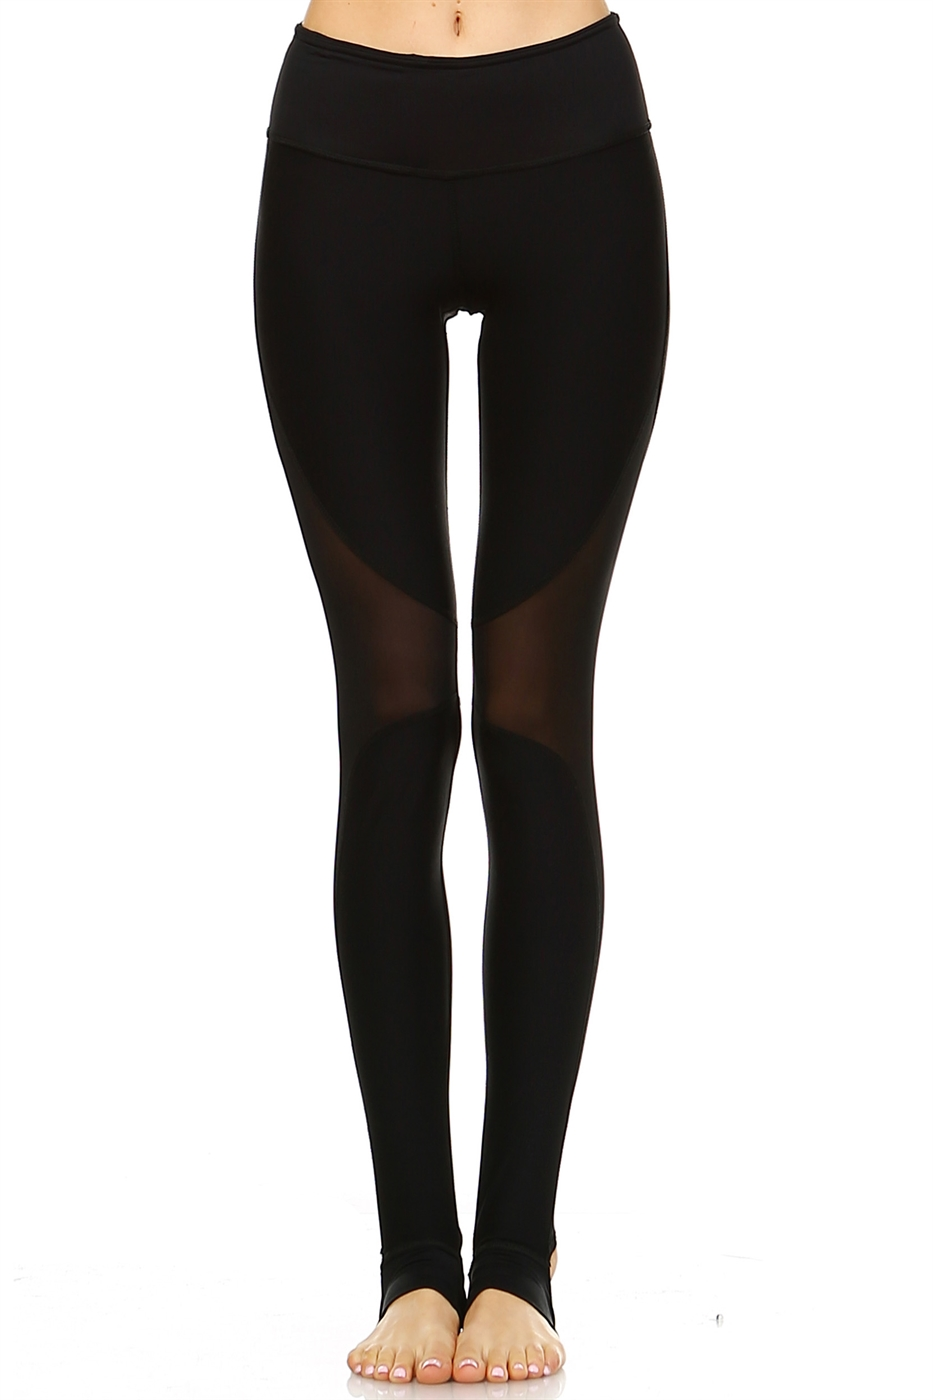 STIRRUP LEGGINGS - orangeshine.com